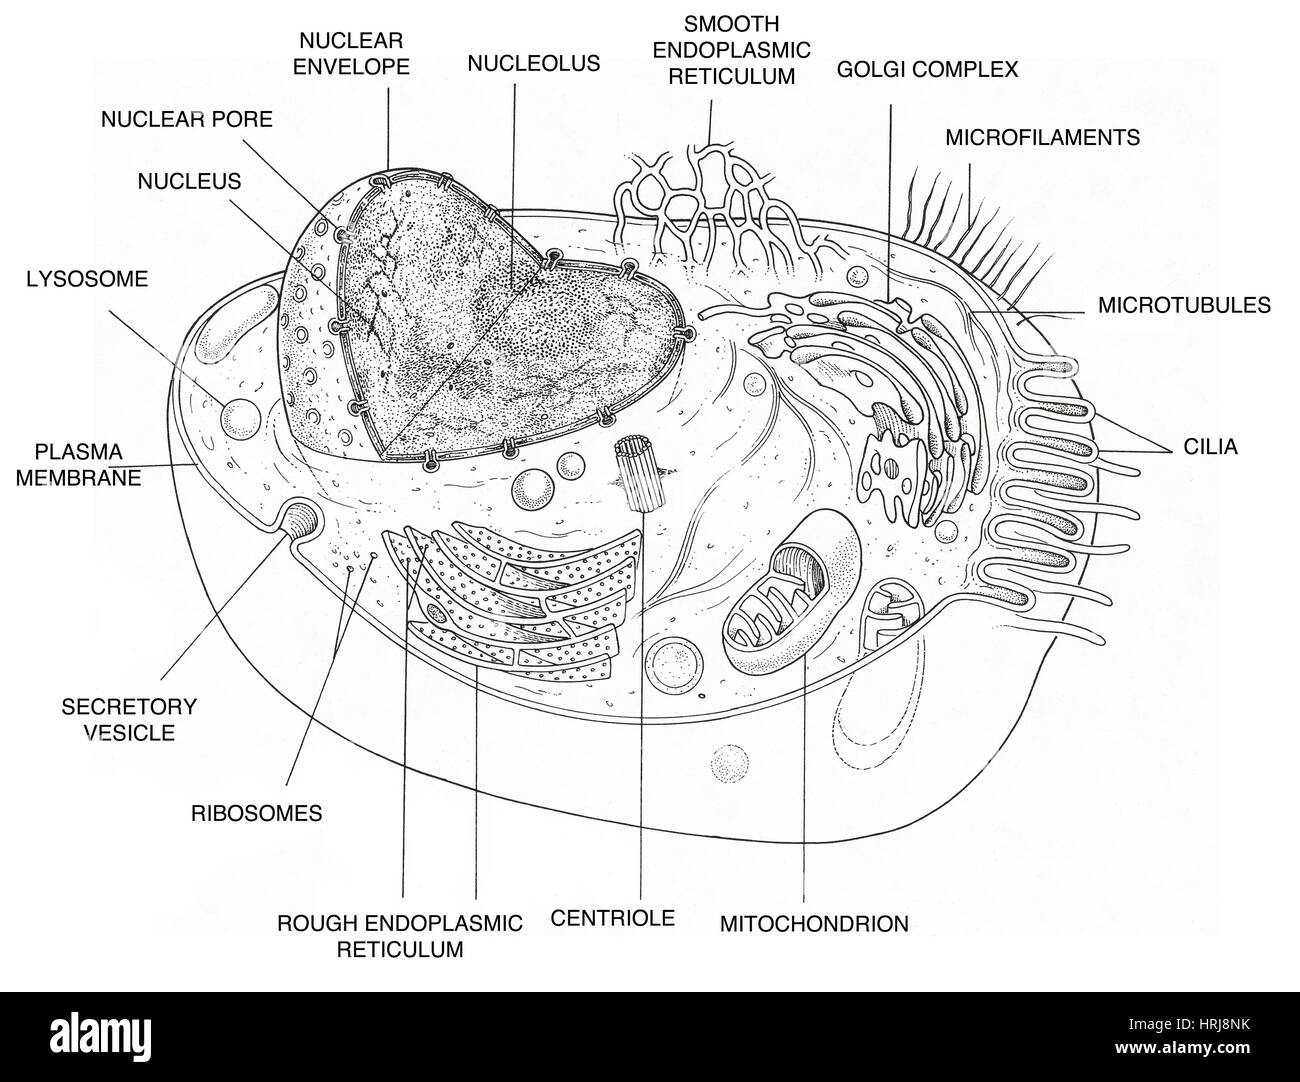 animal cell diagram HRJ8NK microfilament stock photos & microfilament stock images alamy